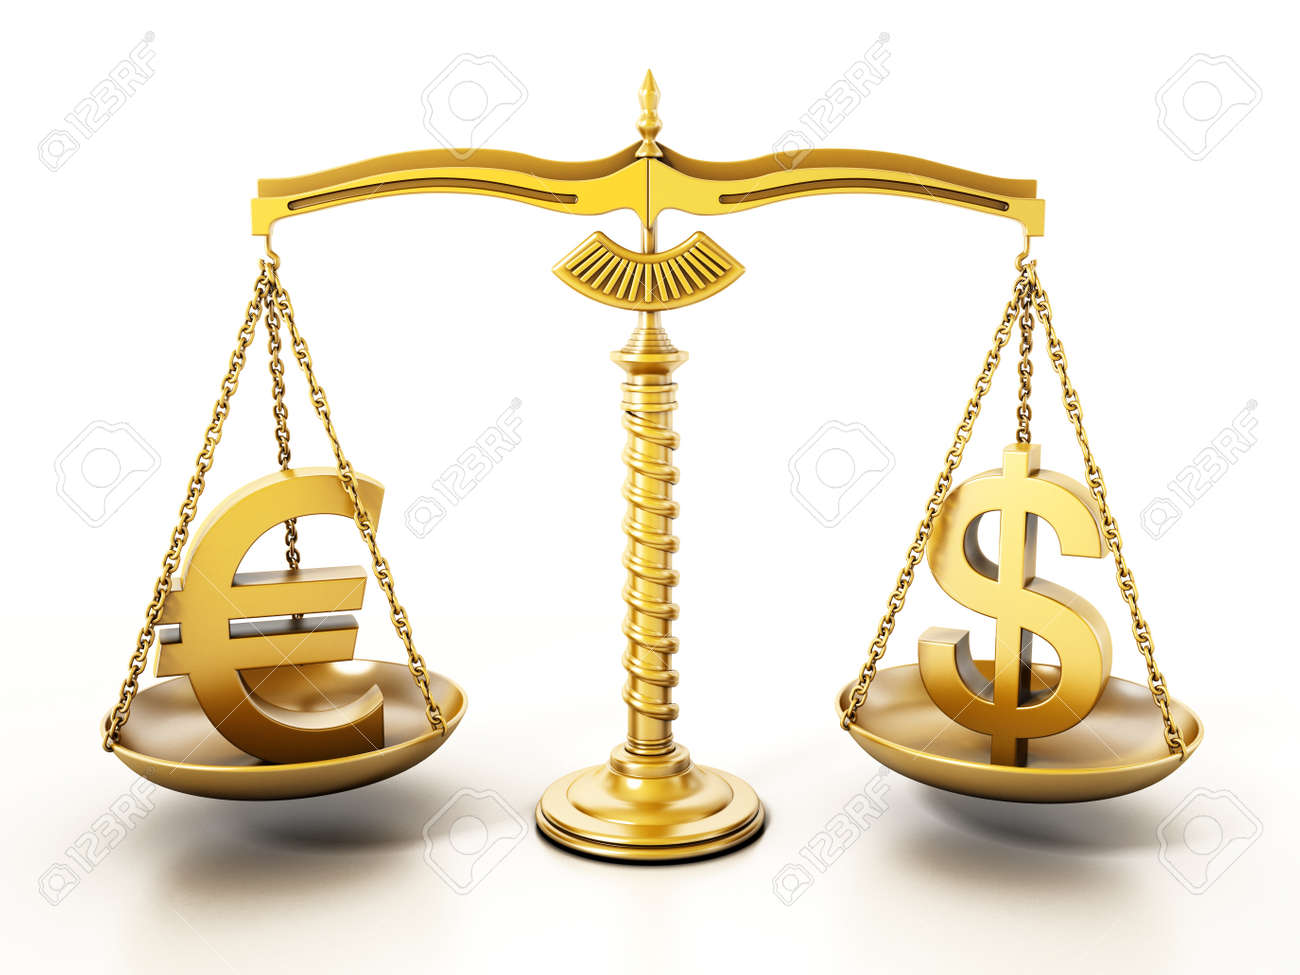 Golden Euro and Dollar signs standing on the scales of a balanced scale. 3D illustration. - 173212239